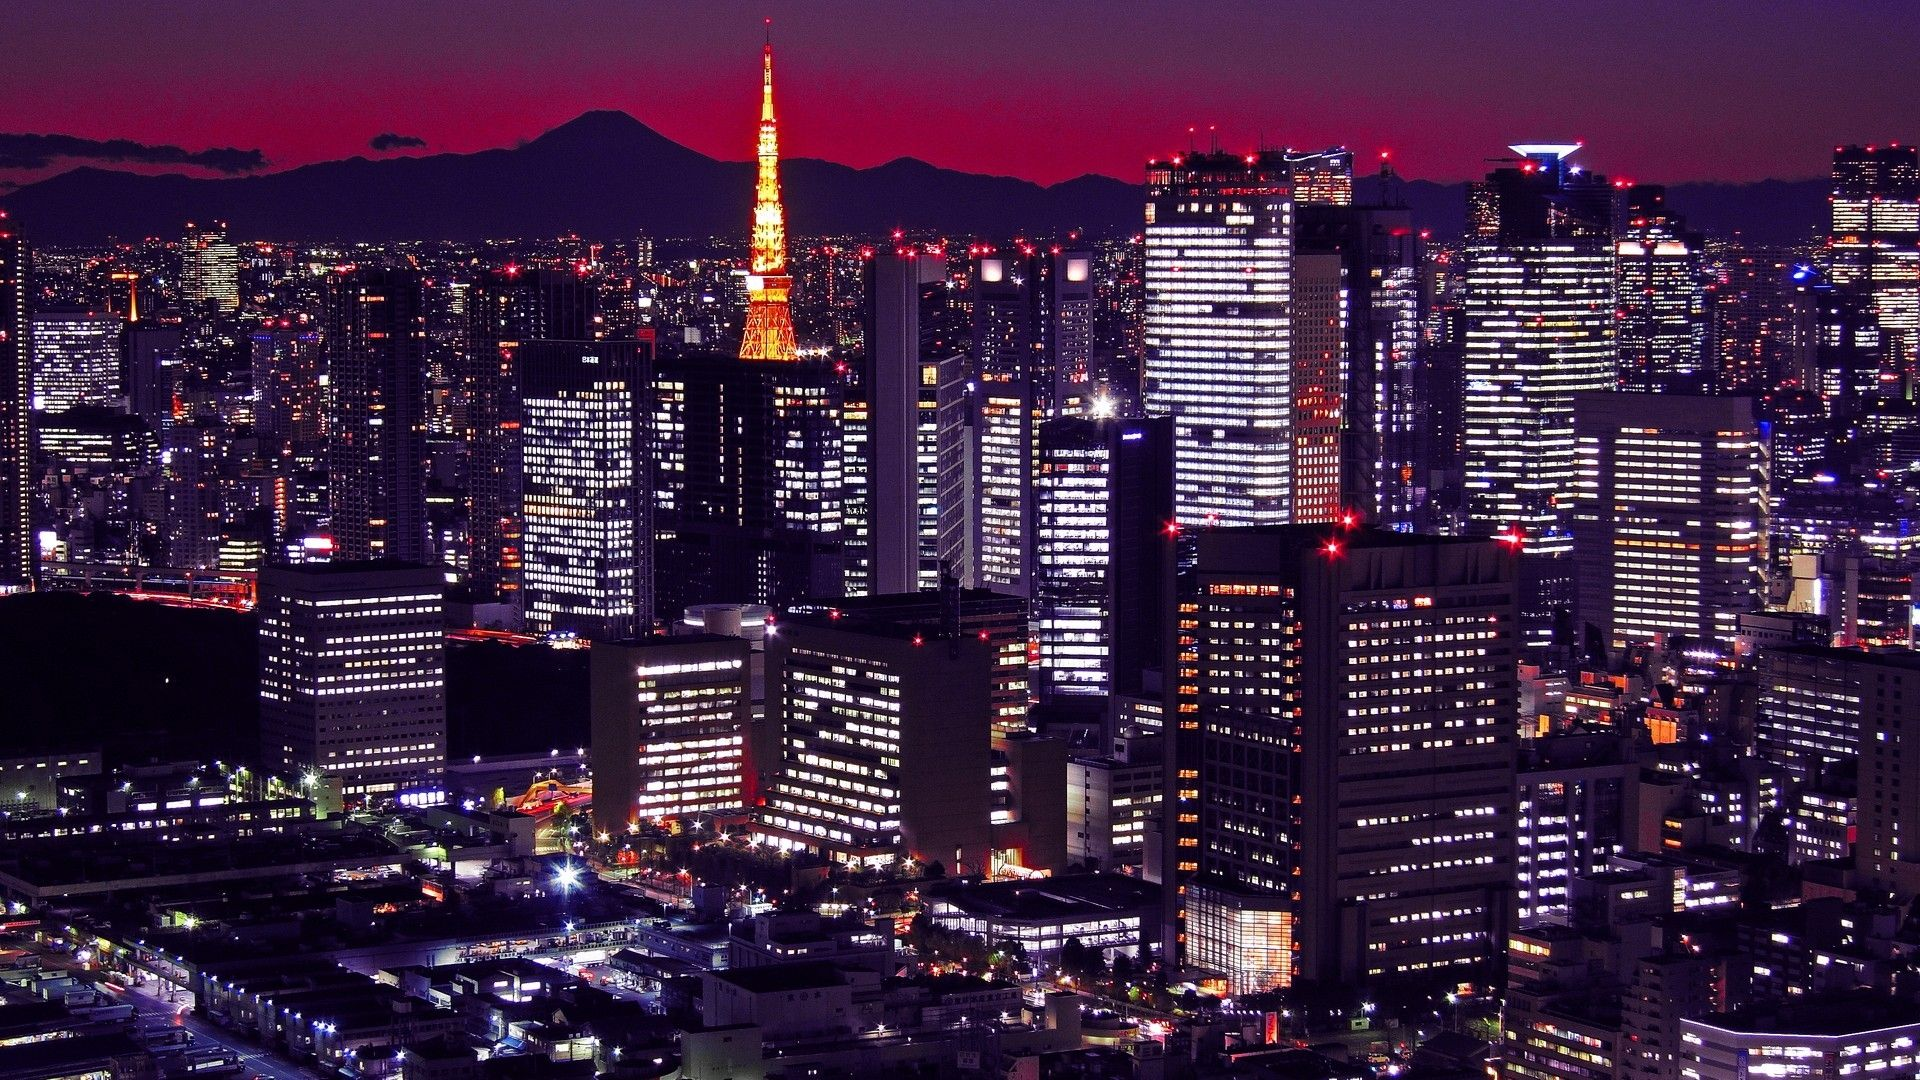 Image for Japan City Lights Beautifull HD cositas que me